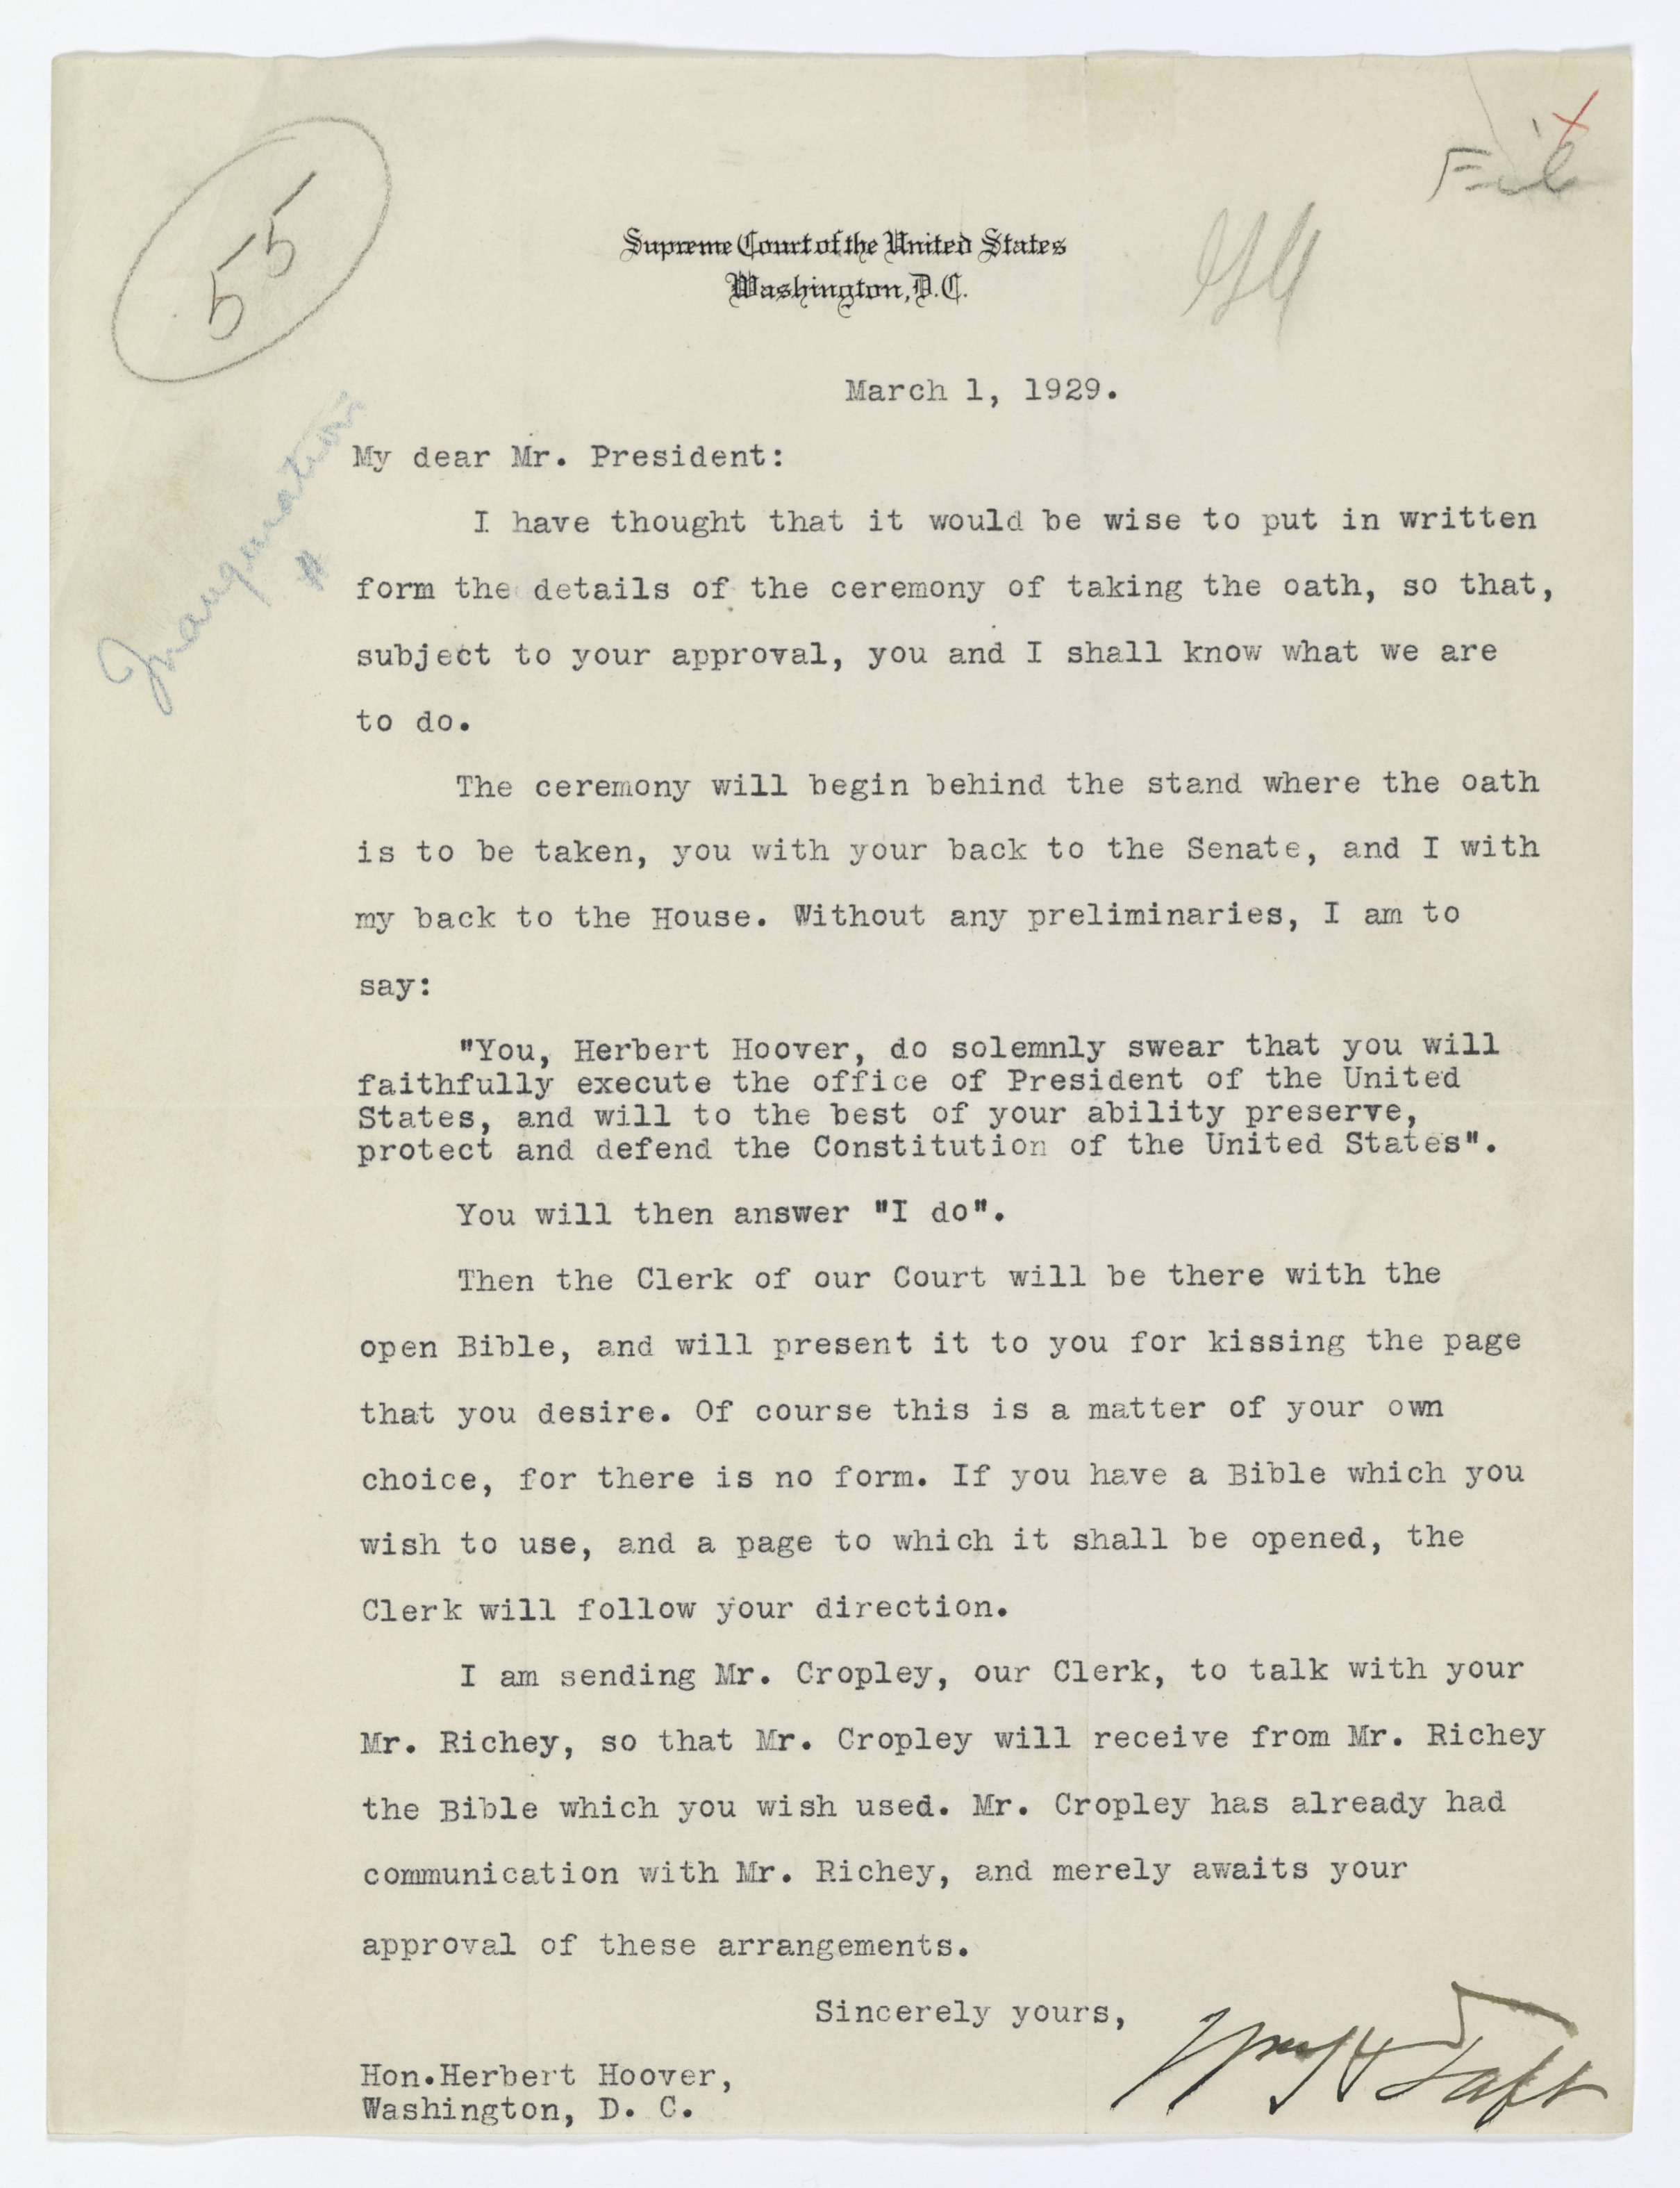 Letter from Chief Justice William Howard Taft to President Herbert Hoover Regarding the Oath of Office, 03/01/1929. (National Archives Identifier 7722952)